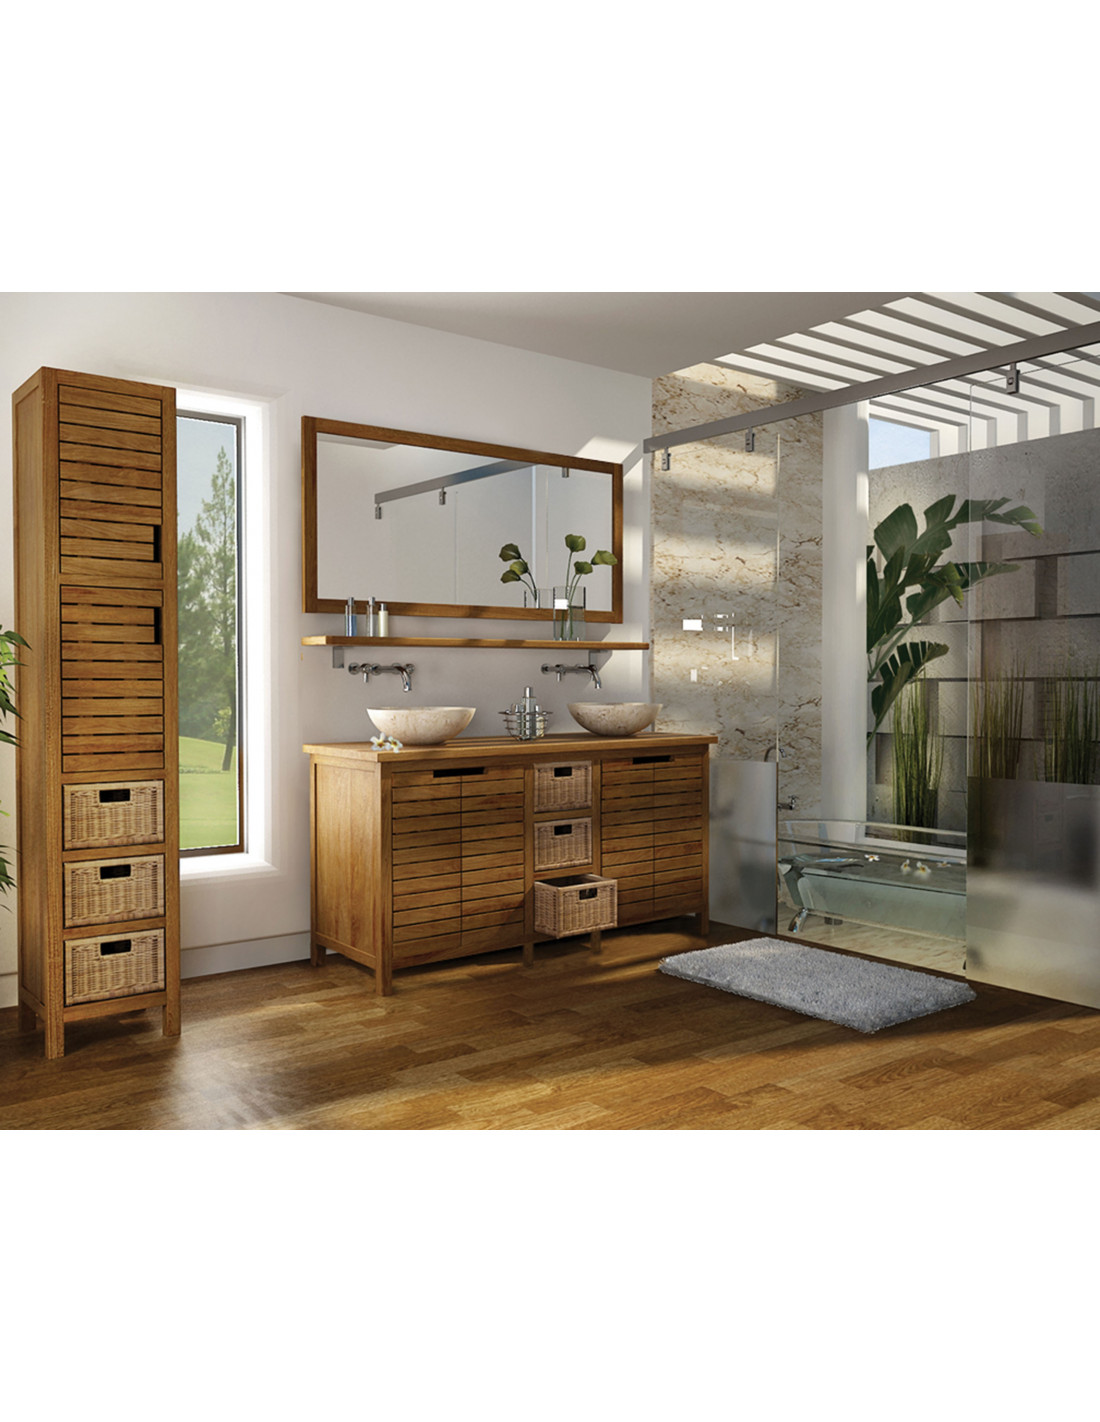 pascal jr paillet meuble salle de bain en teck pyla 140 cm hyper brico. Black Bedroom Furniture Sets. Home Design Ideas